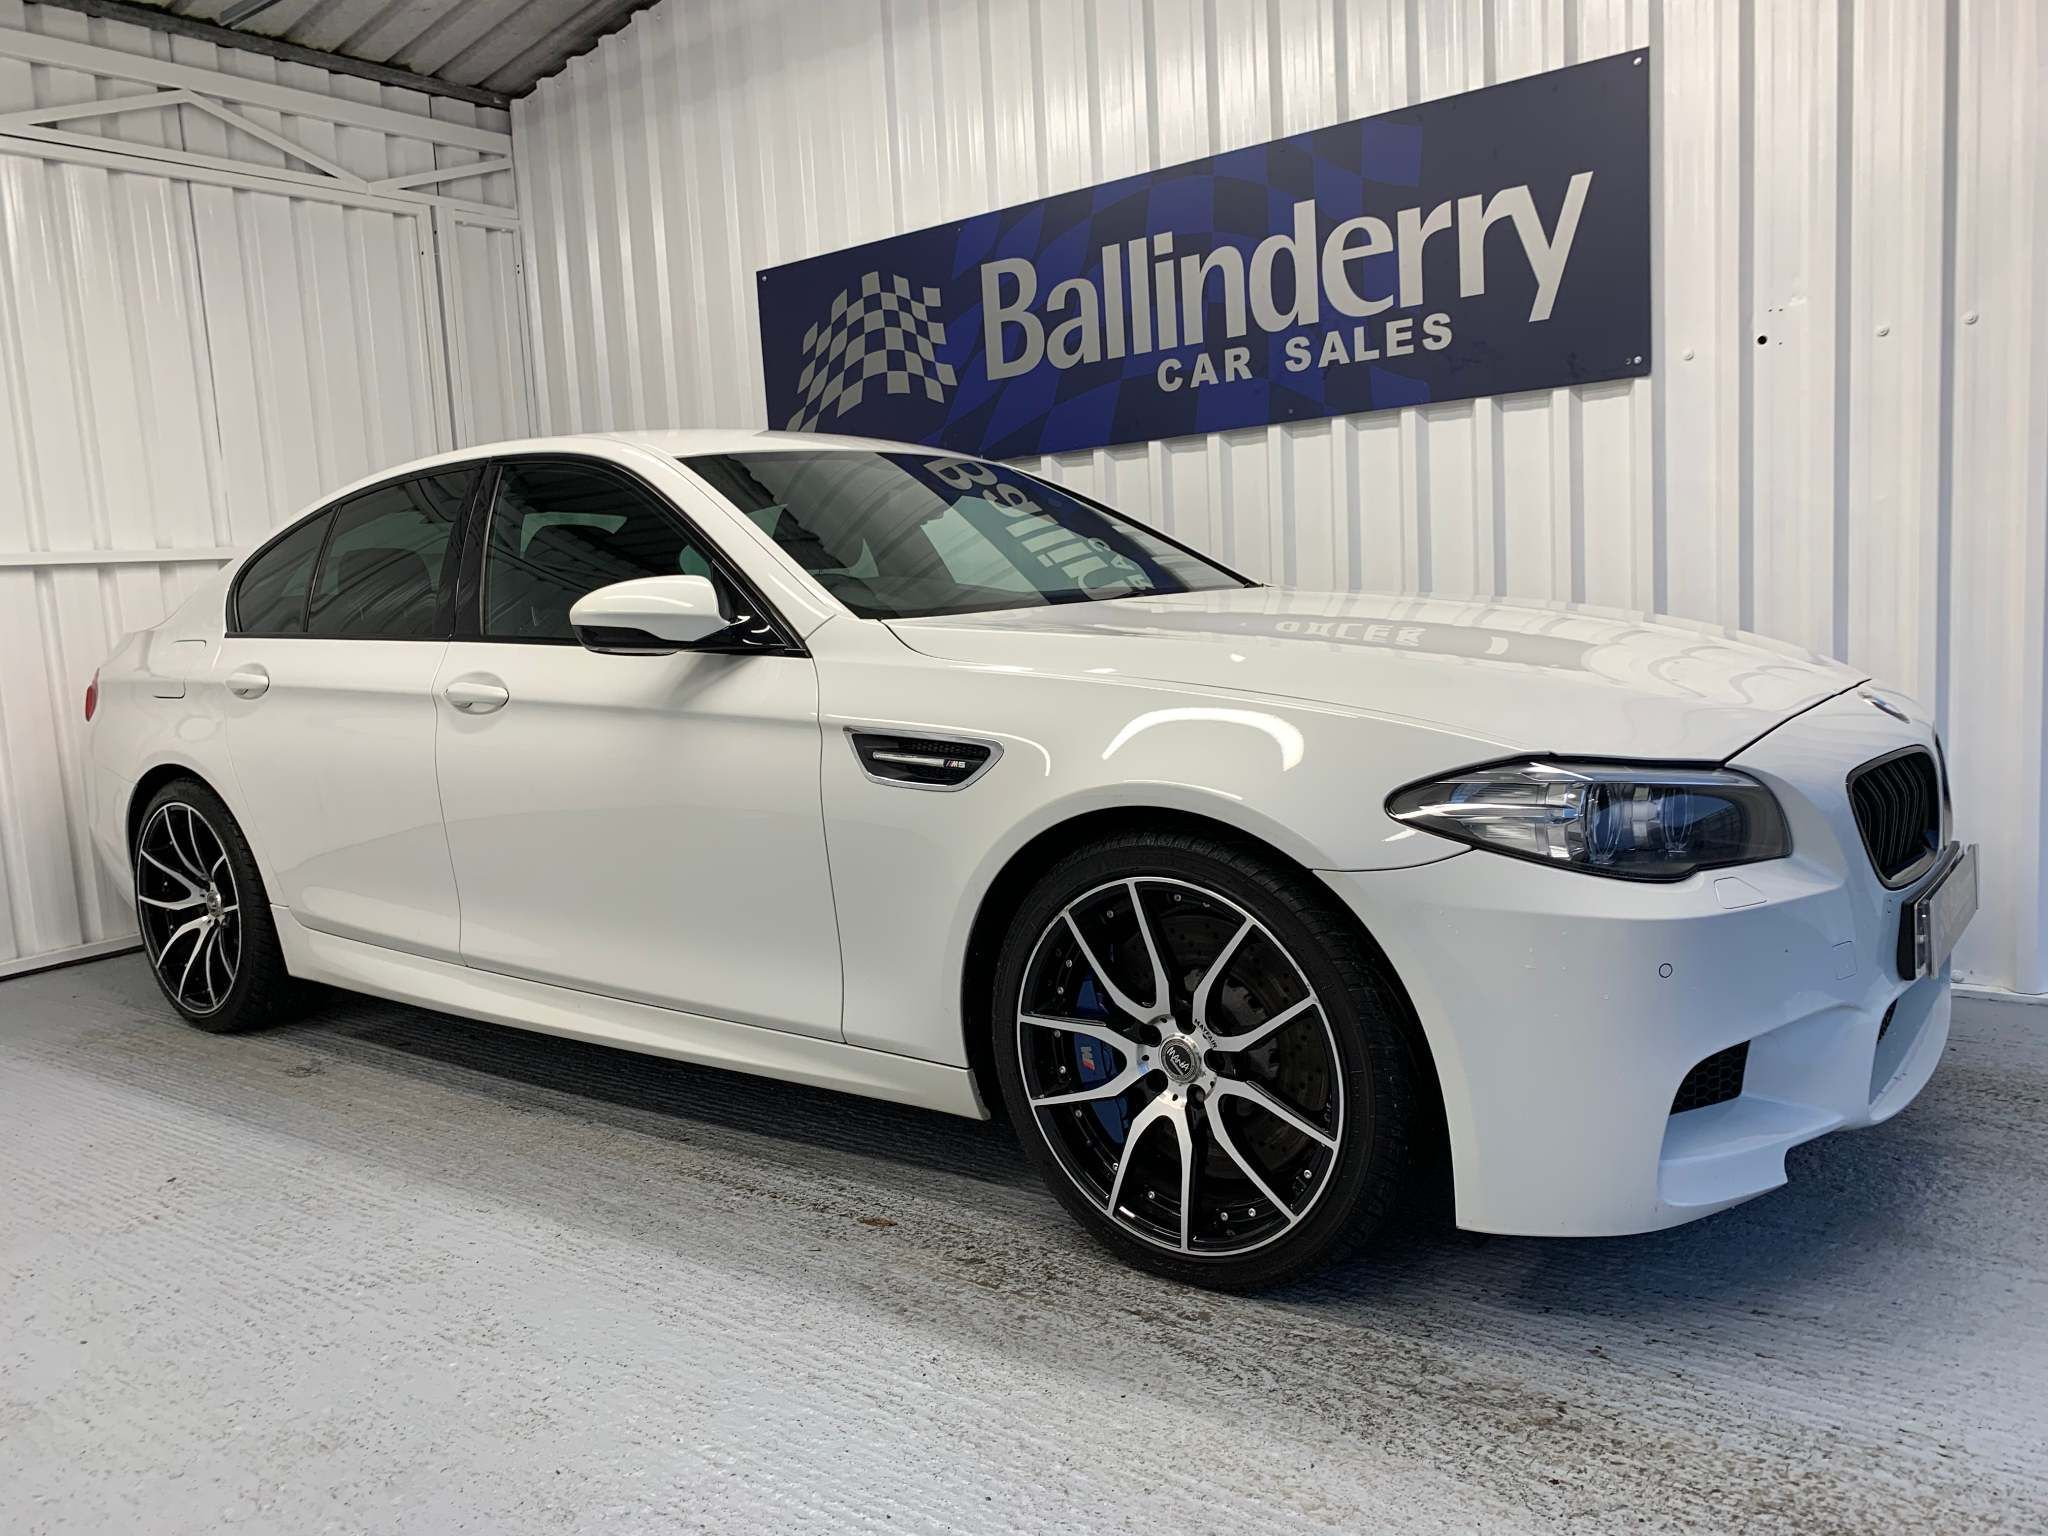 2013 BMW 5 Series 2.0 520d M Sport Diesel Automatic M5 BODY KIT & 20 INCH ALLOYS – Ballinderry Car Sales Moira